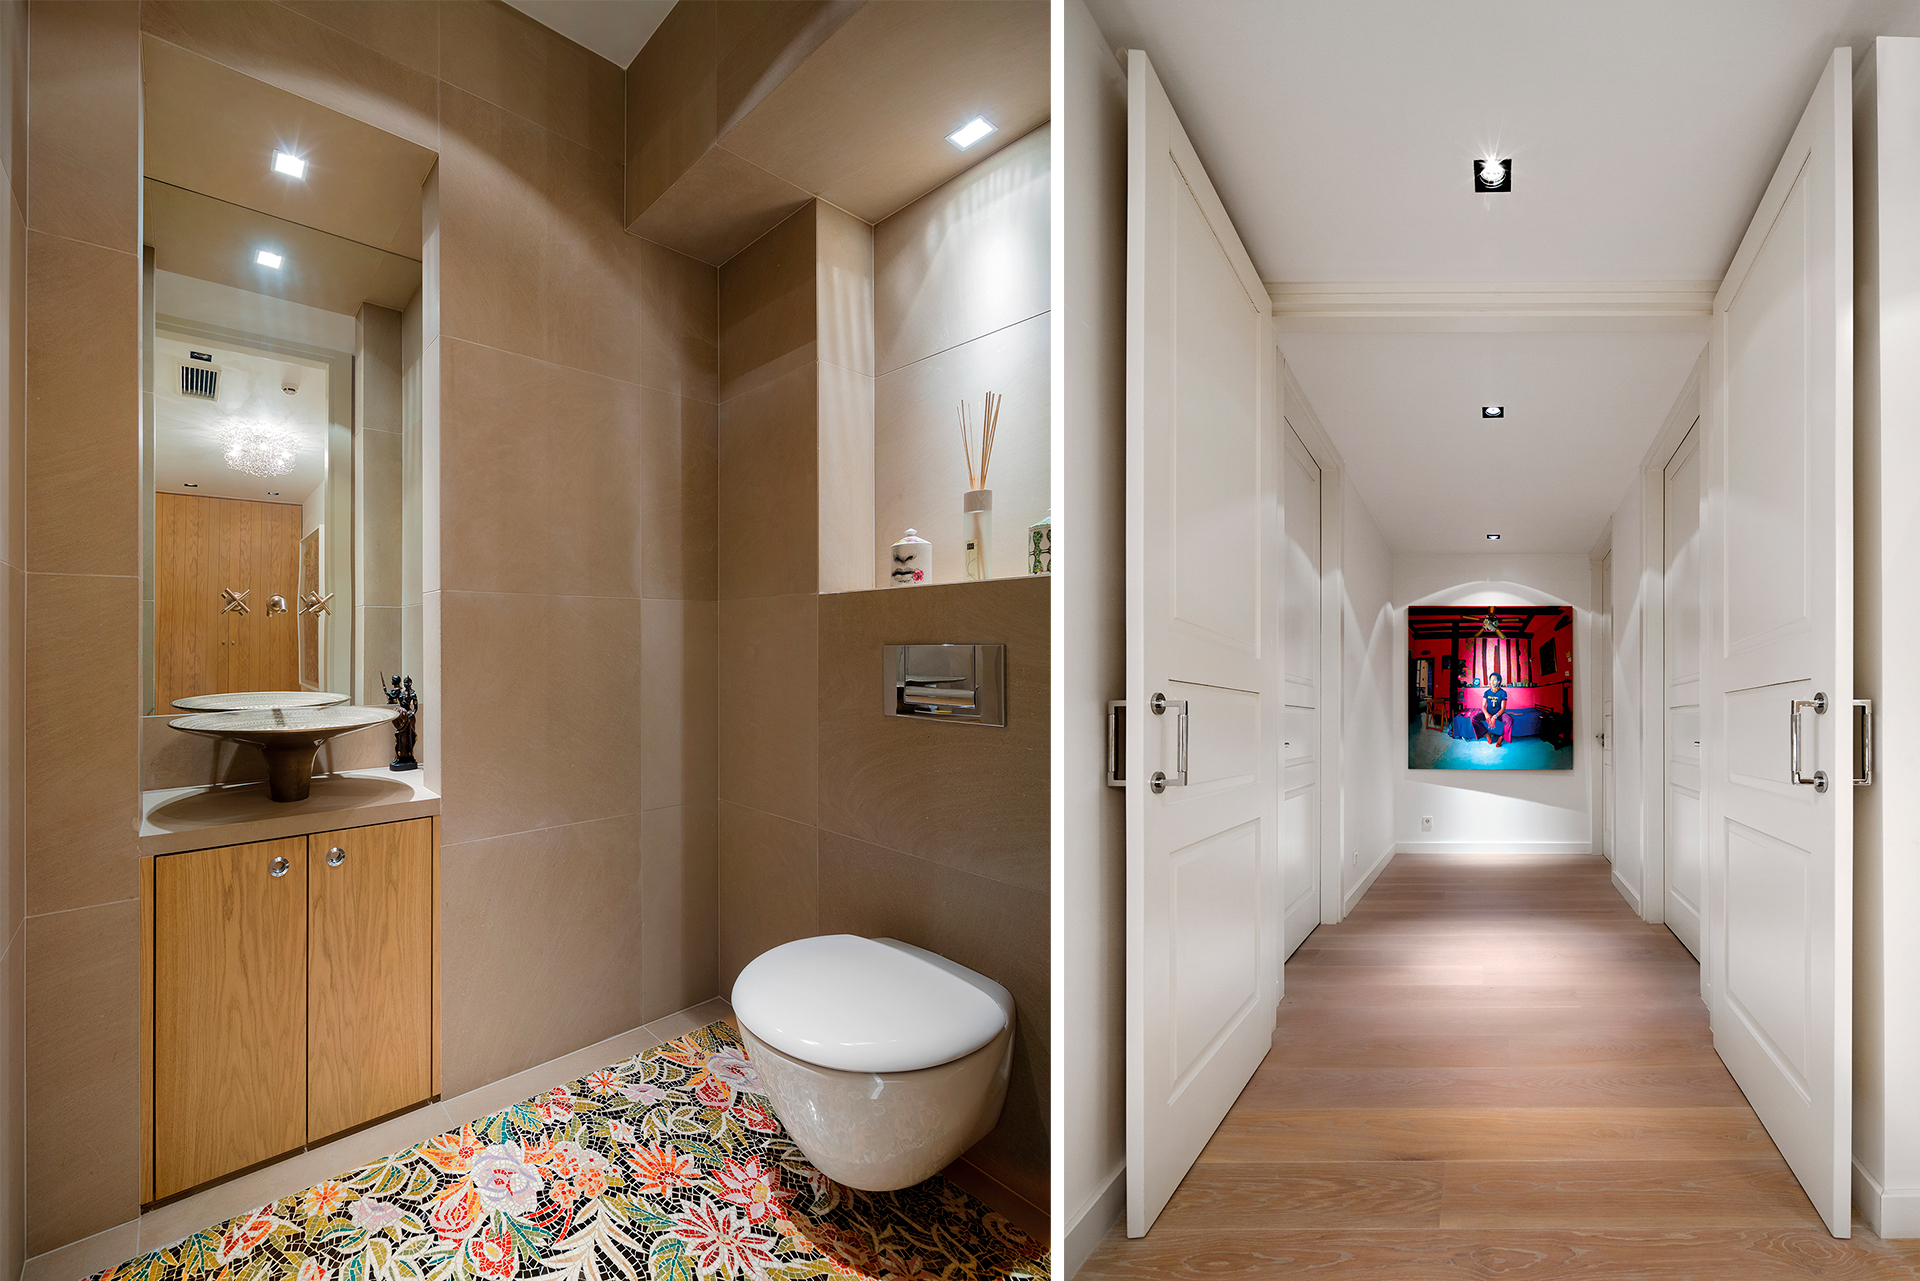 bathroom with floral mosiac floor and a long hallway flanked by white wood doors and panels